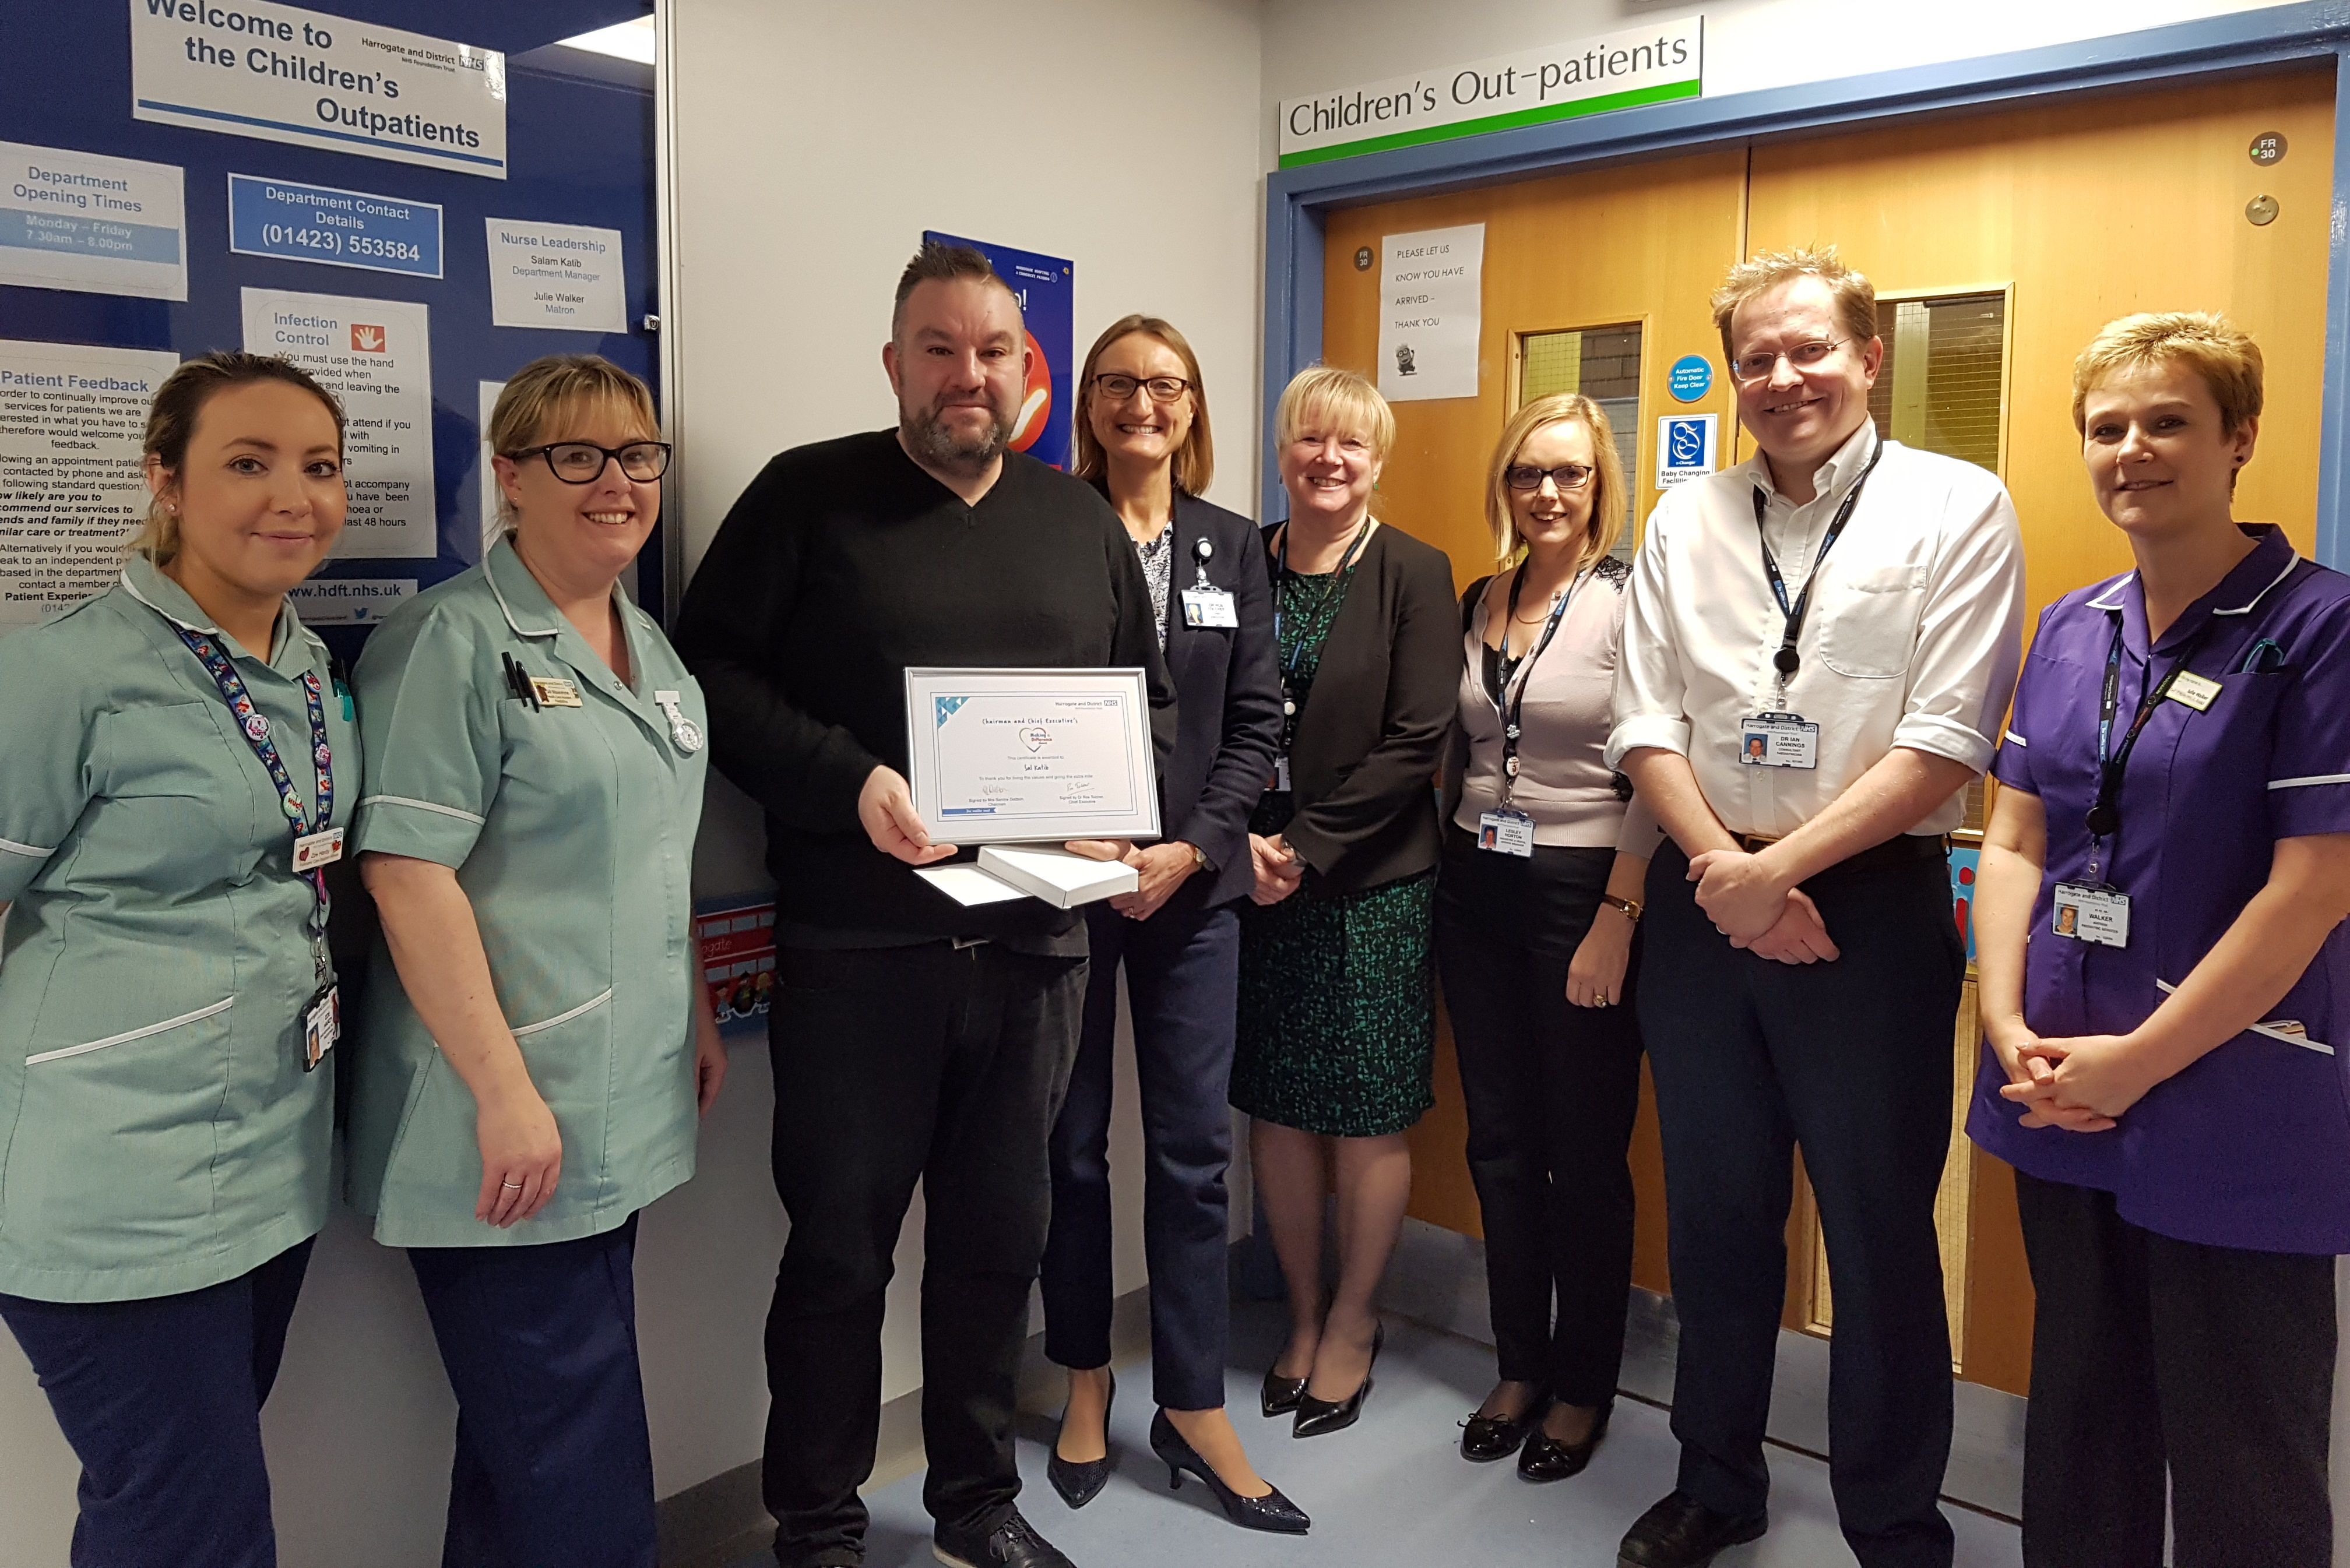 Sal Katib pictured with colleagues from Paediatric Services